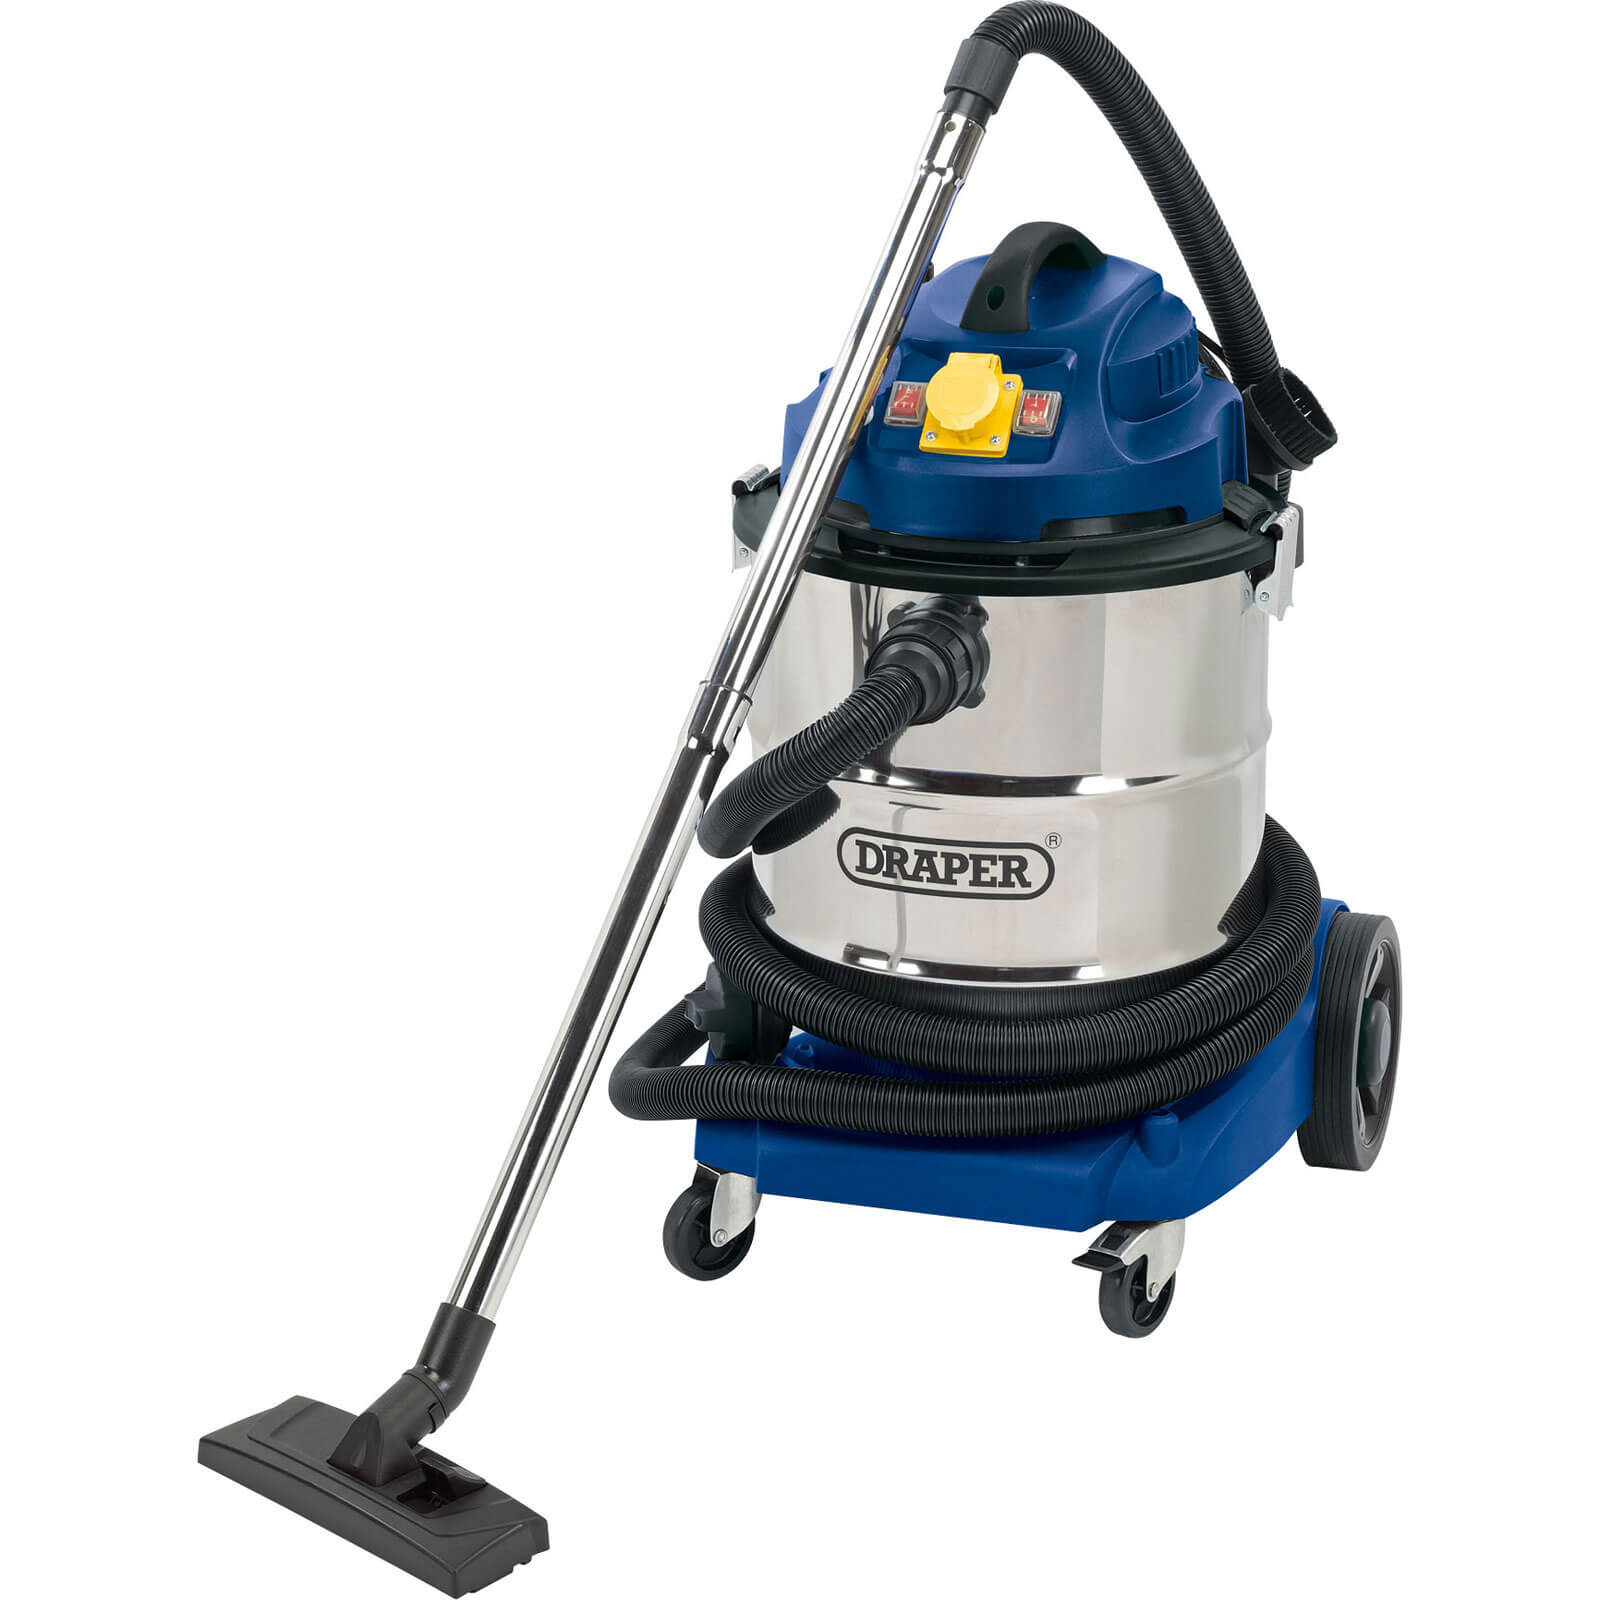 Draper WDV50SS Wet and Dry Vacuum Cleaner 110v